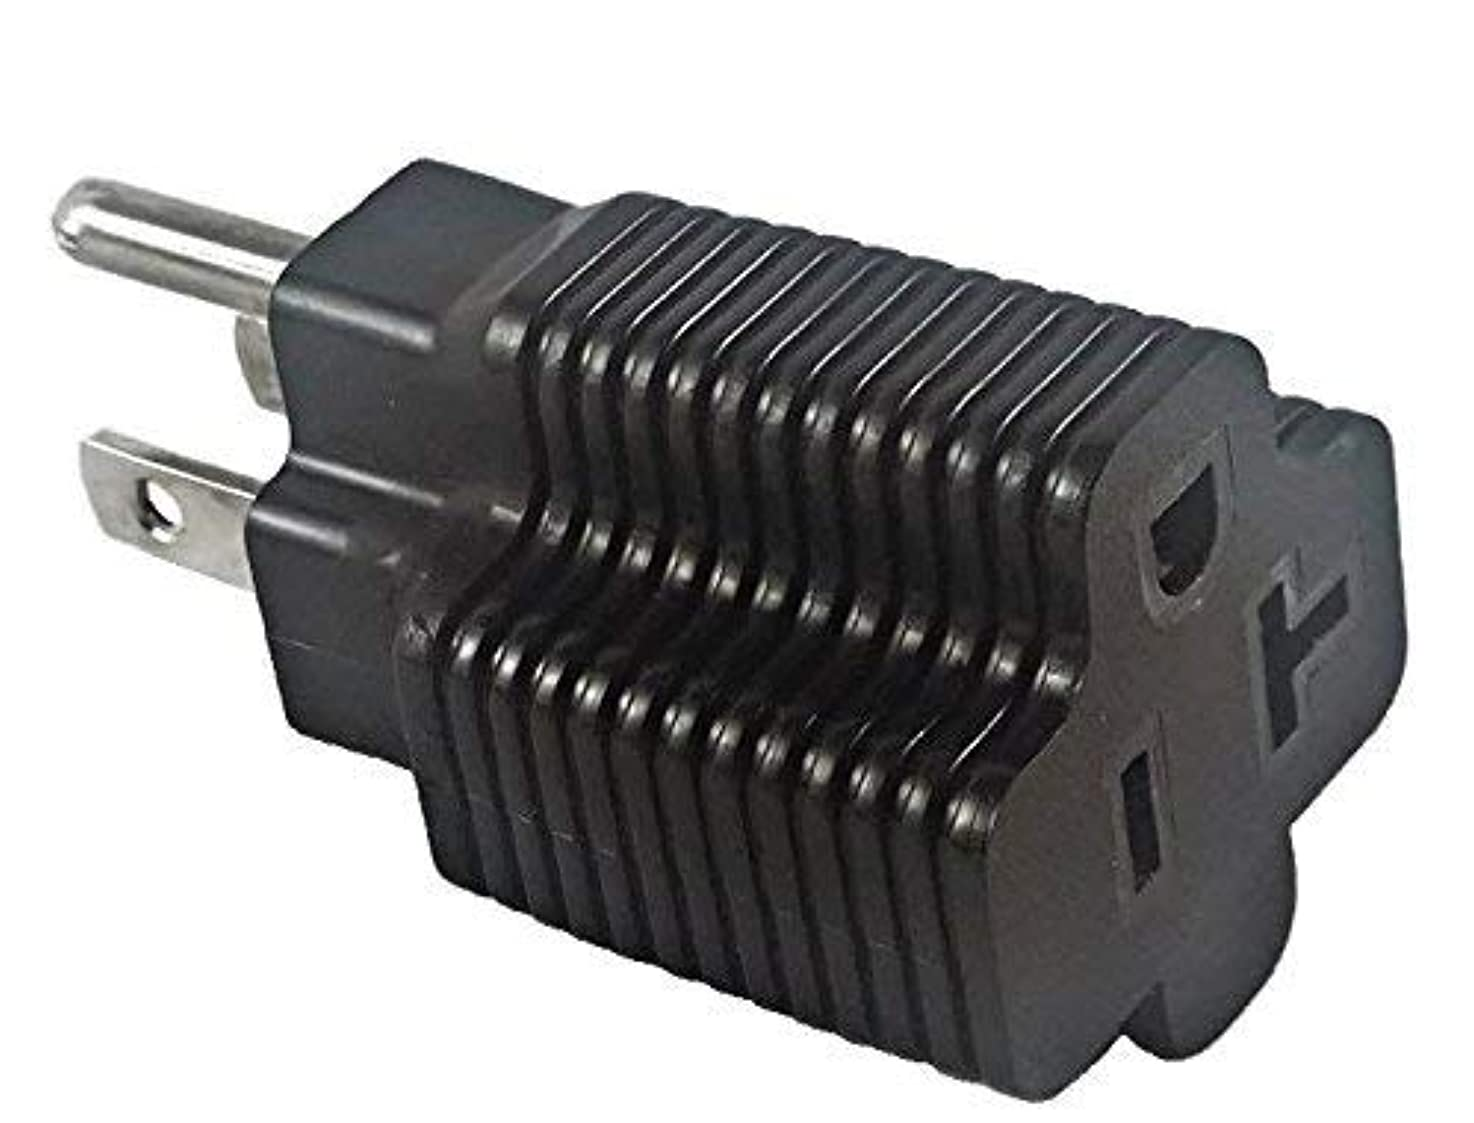 5-15P to 5-20R Power Cord Plug Adapter, 15A Plug to 20A Connector, 125V - Iron Box IBX-515520